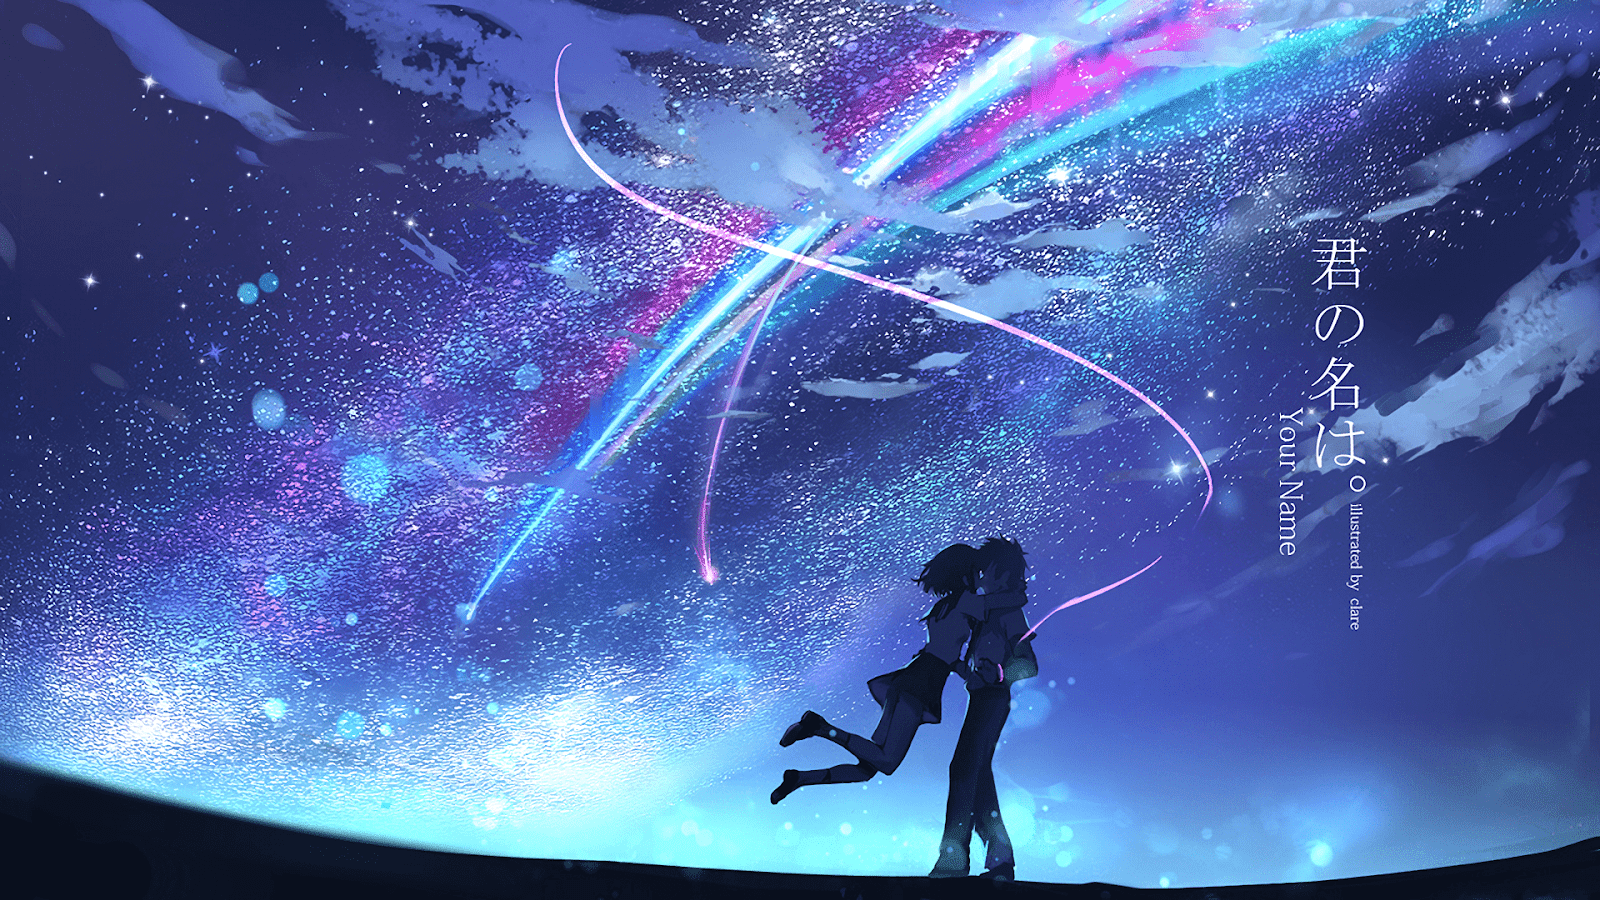 AowVN%2B%252813%2529 - [ Hình Nền ] Anime Your Name. - Kimi no Nawa full HD cực đẹp | Anime Wallpaper